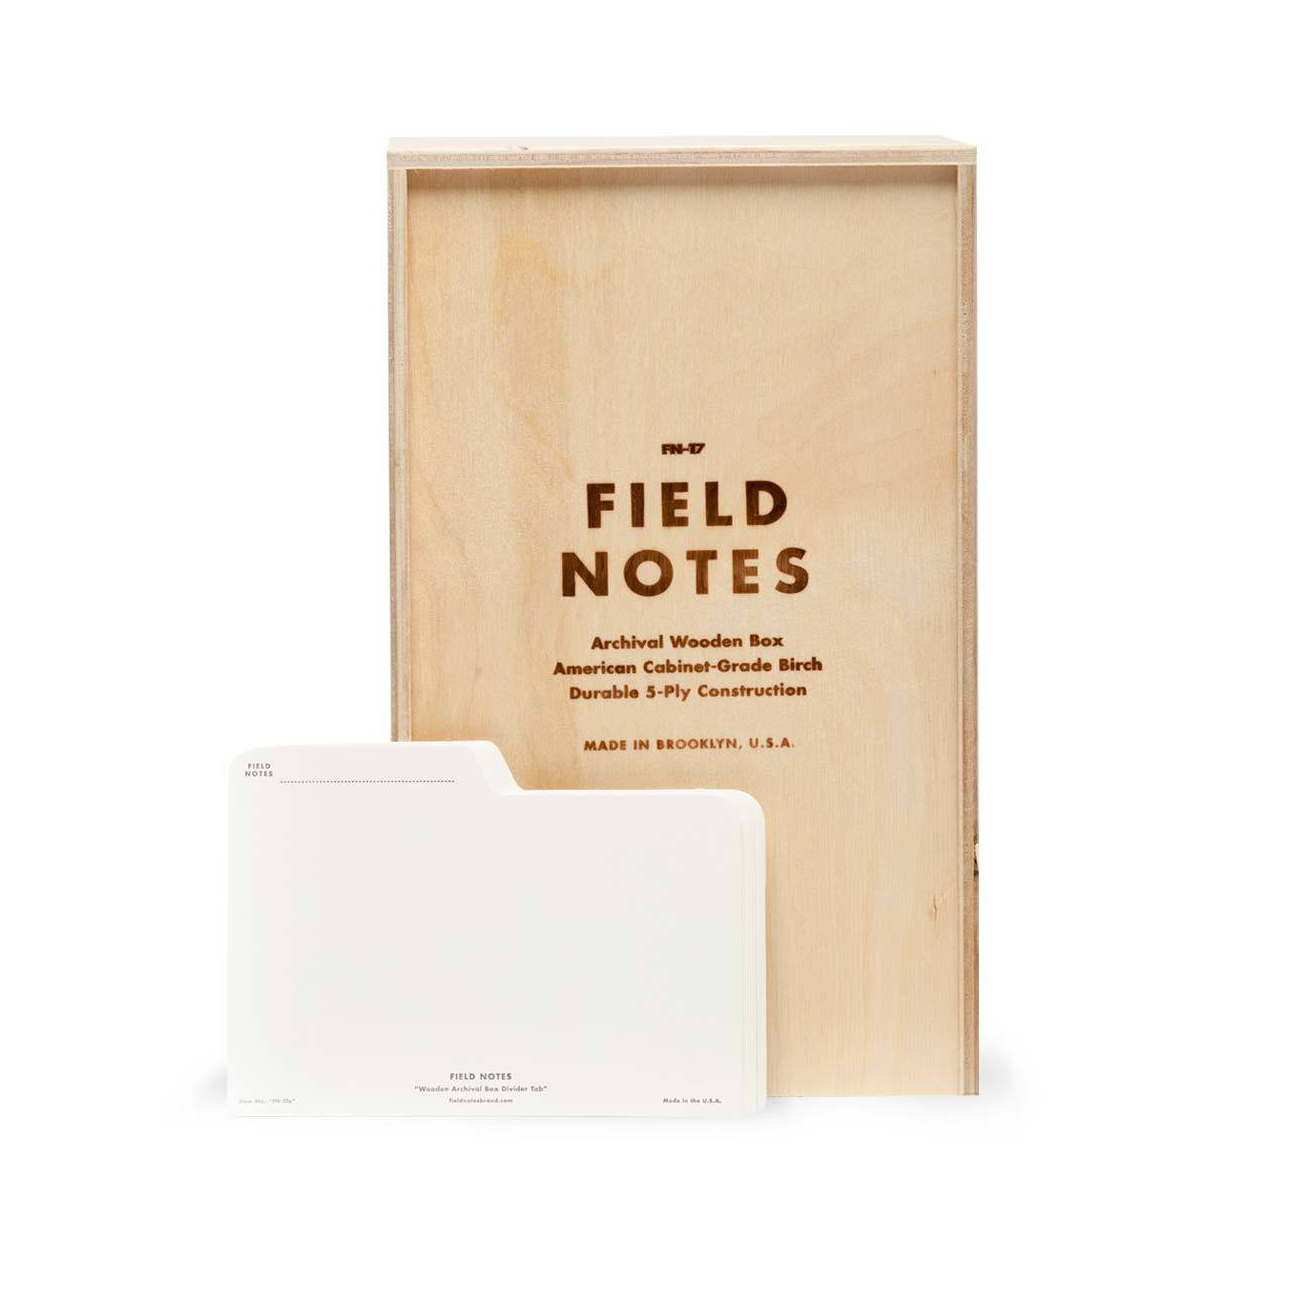 Field Notes Archival Box, Sperrholzschachtel, Registerkarten,